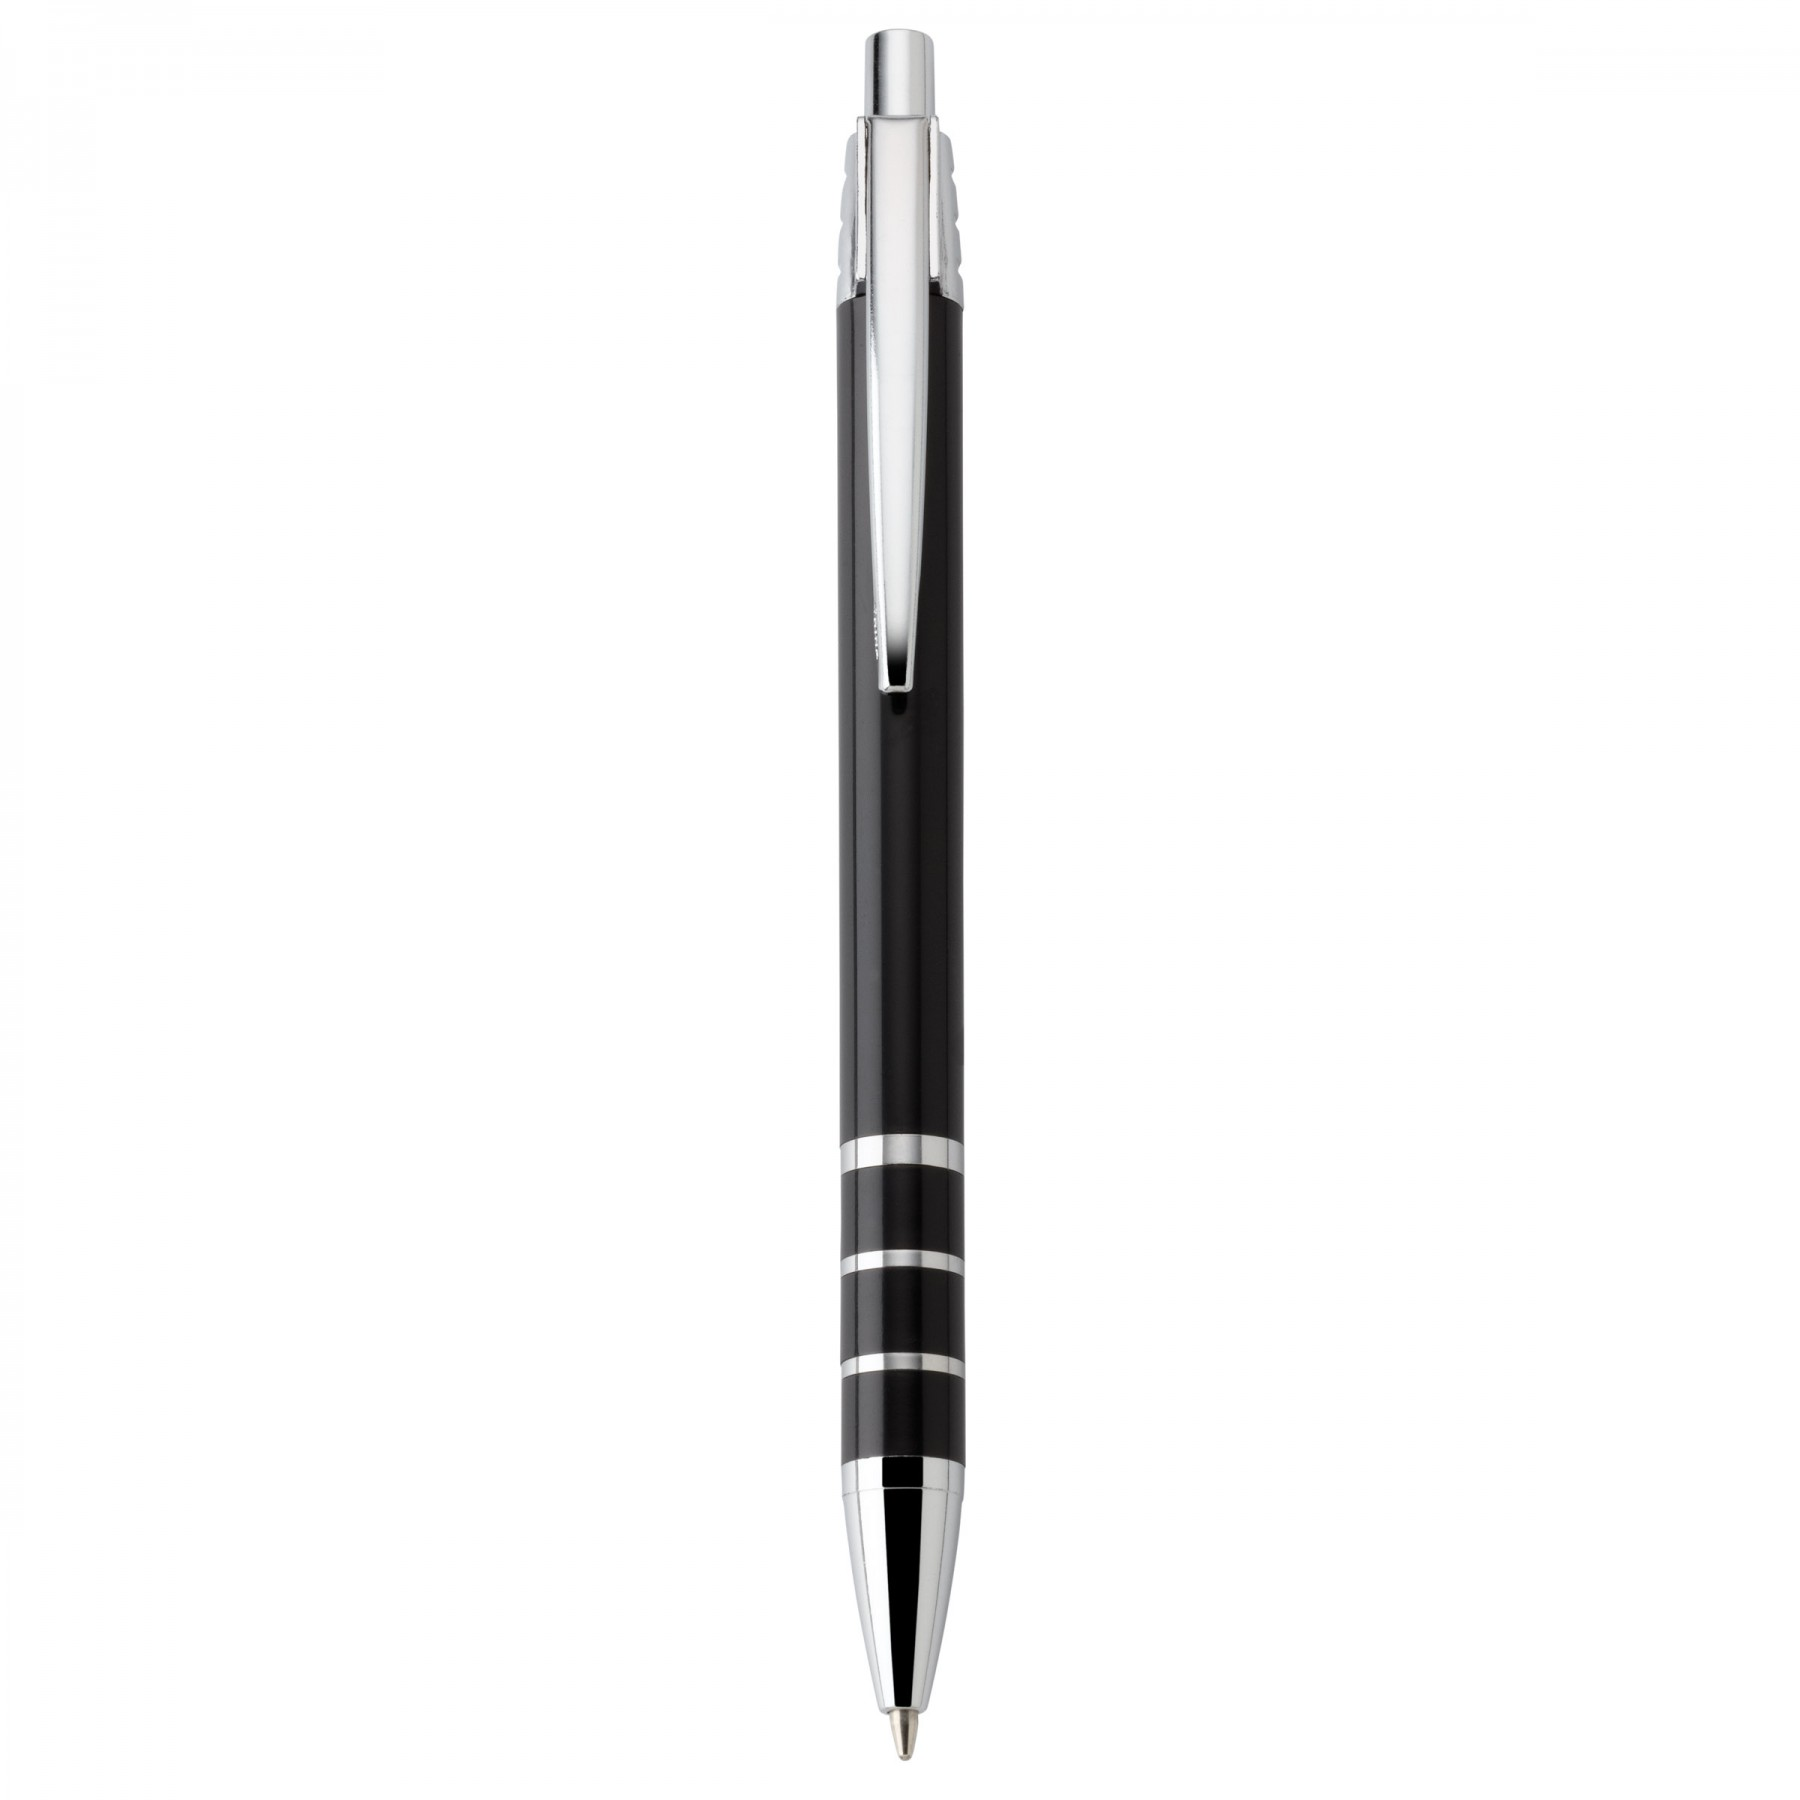 Nuvo Ballpoint Pen, G1184, One Colour Imprint